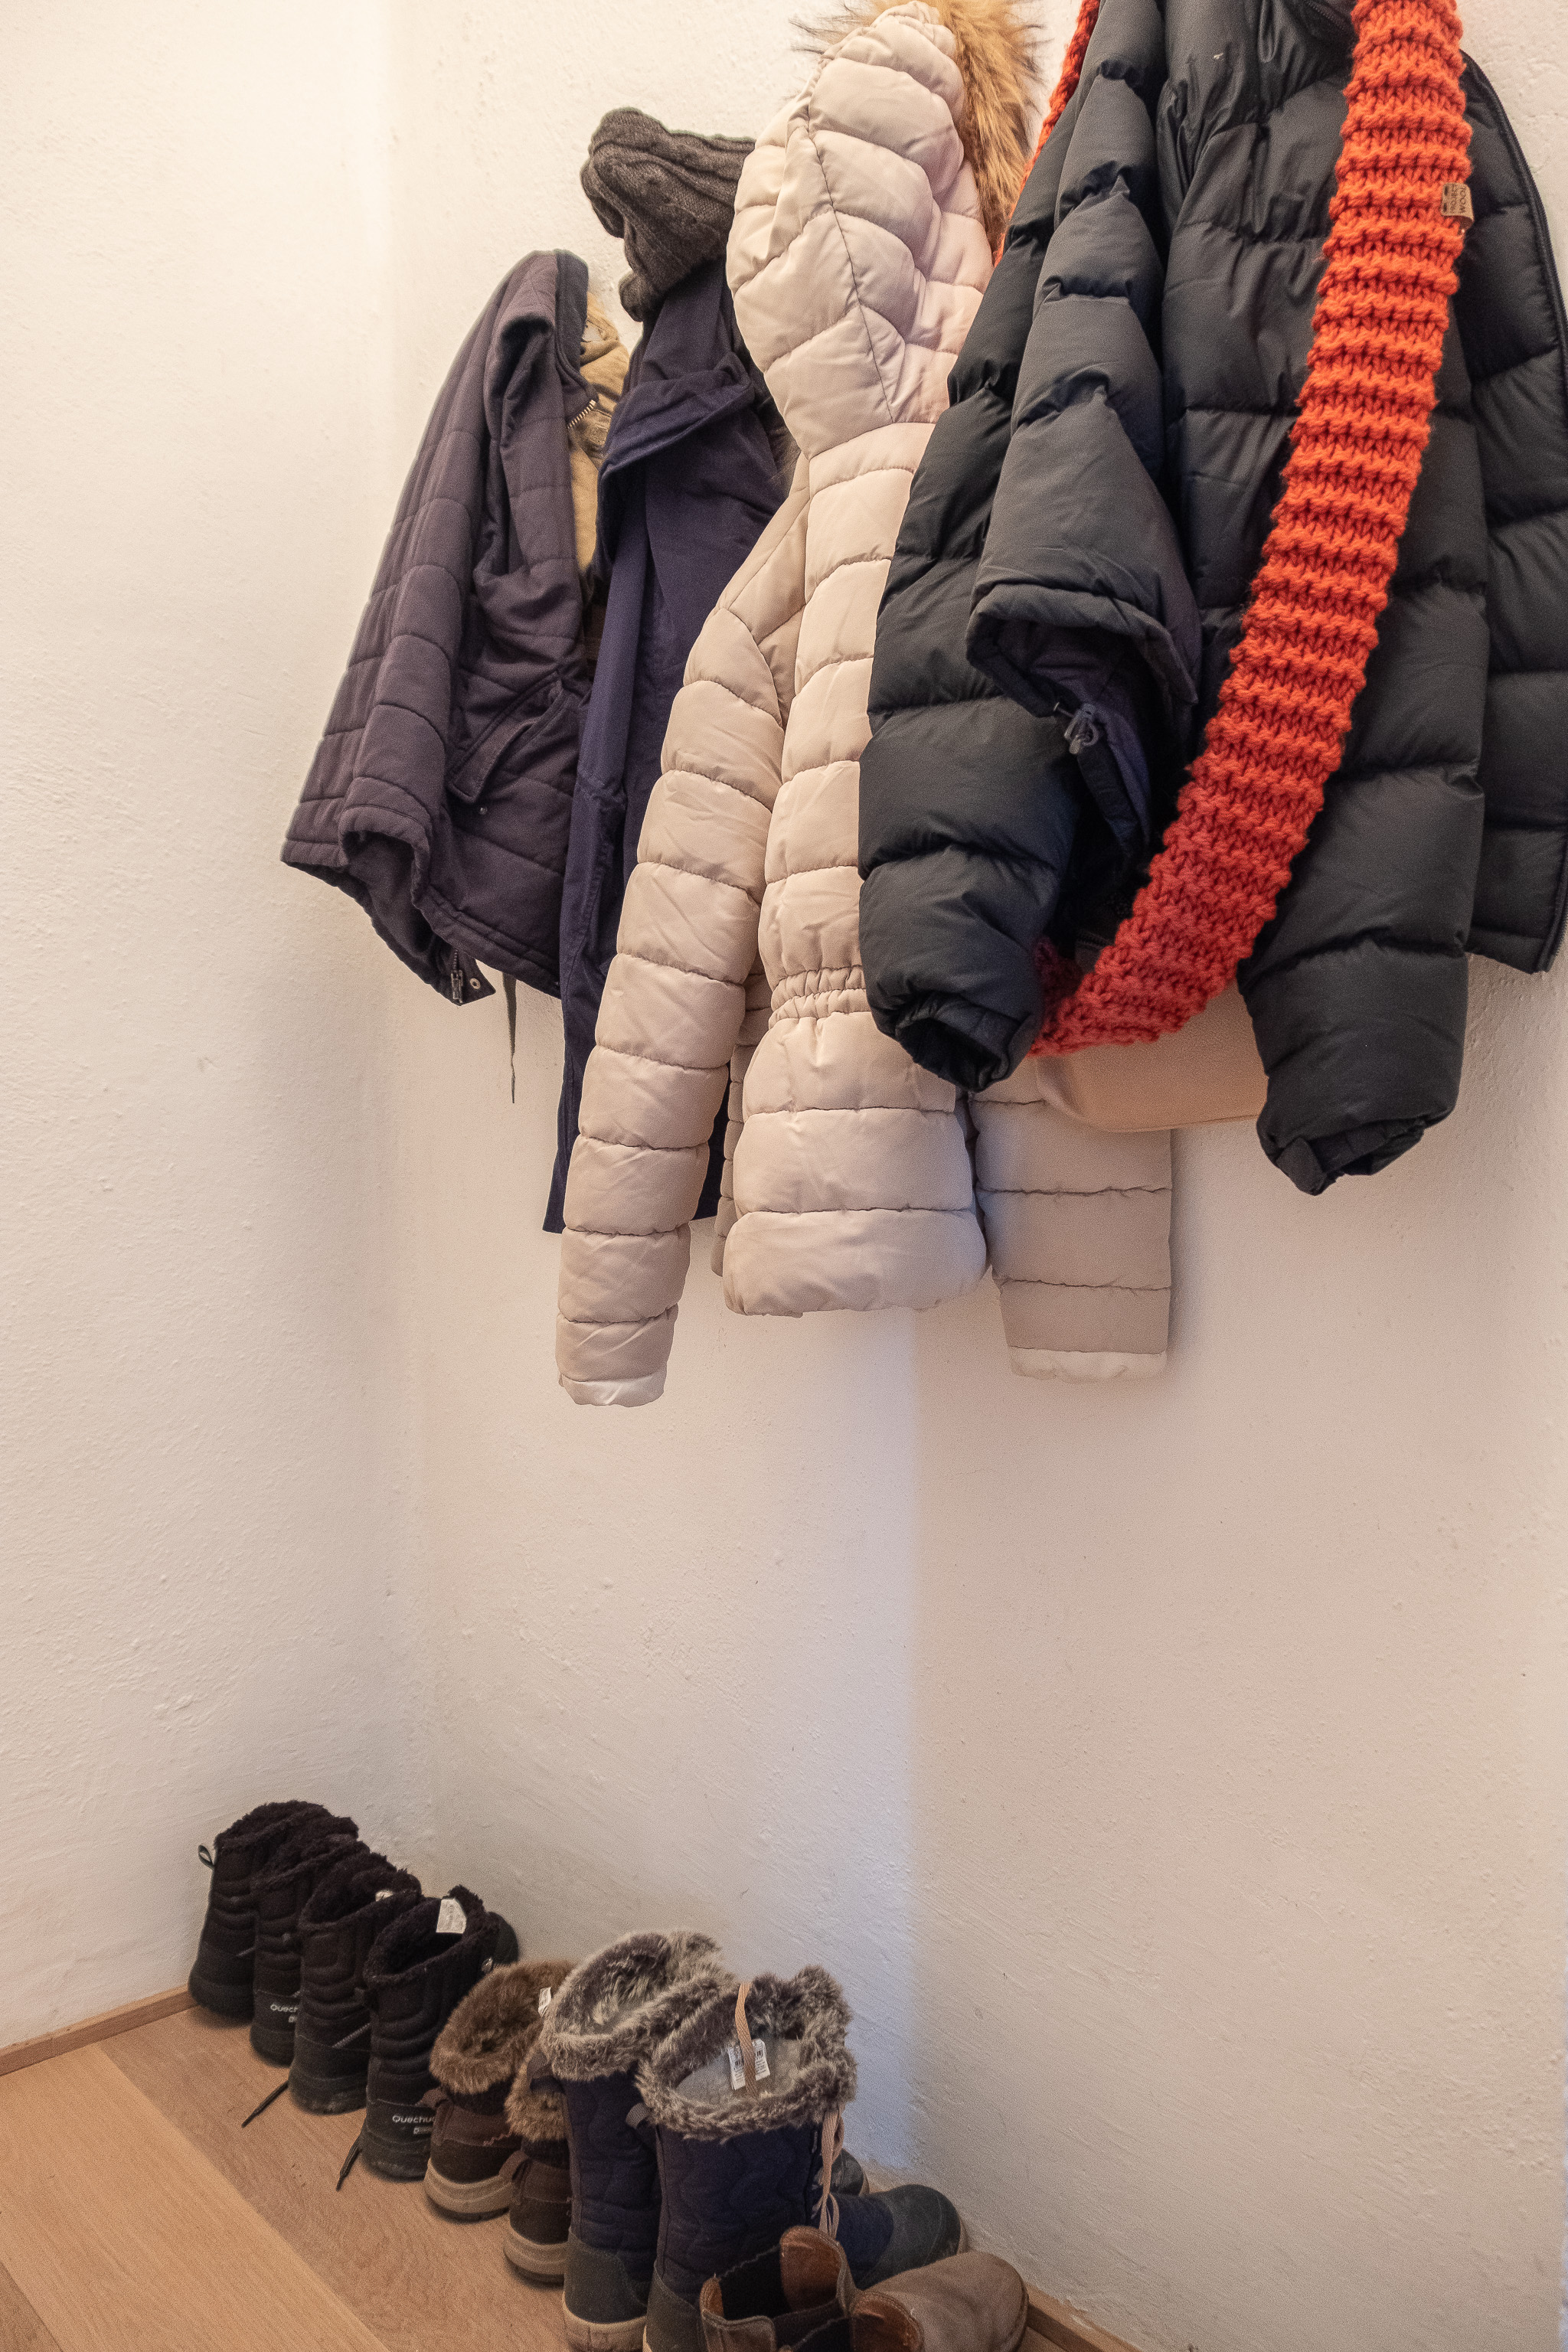 Loving our winter coat rack and boots by the front door, never had one before!